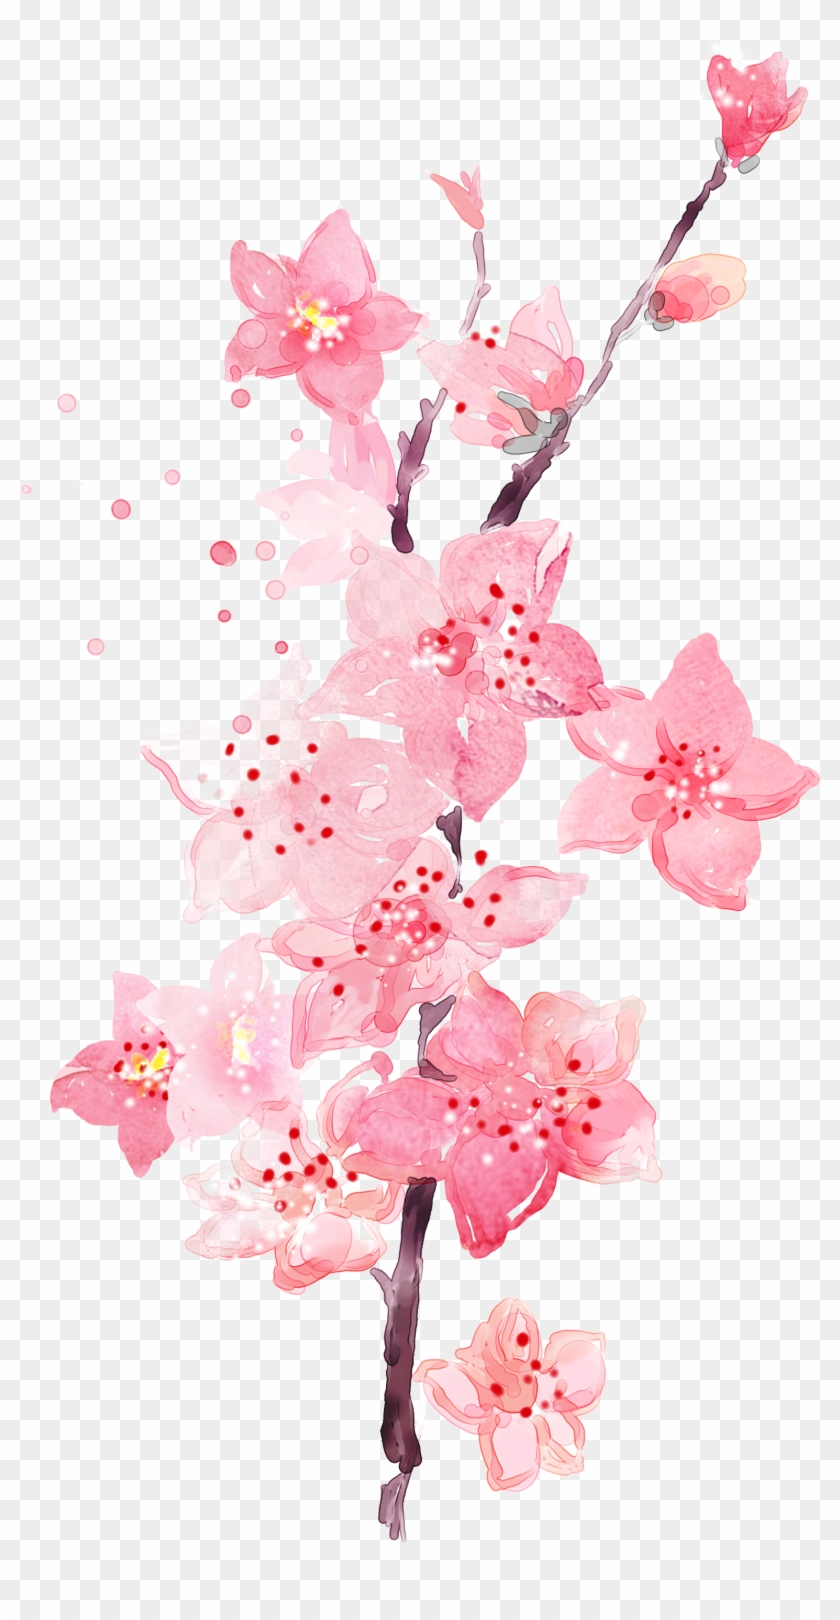 Floral Wallpaper Watercolor Watercolor Peach Blossom Flower